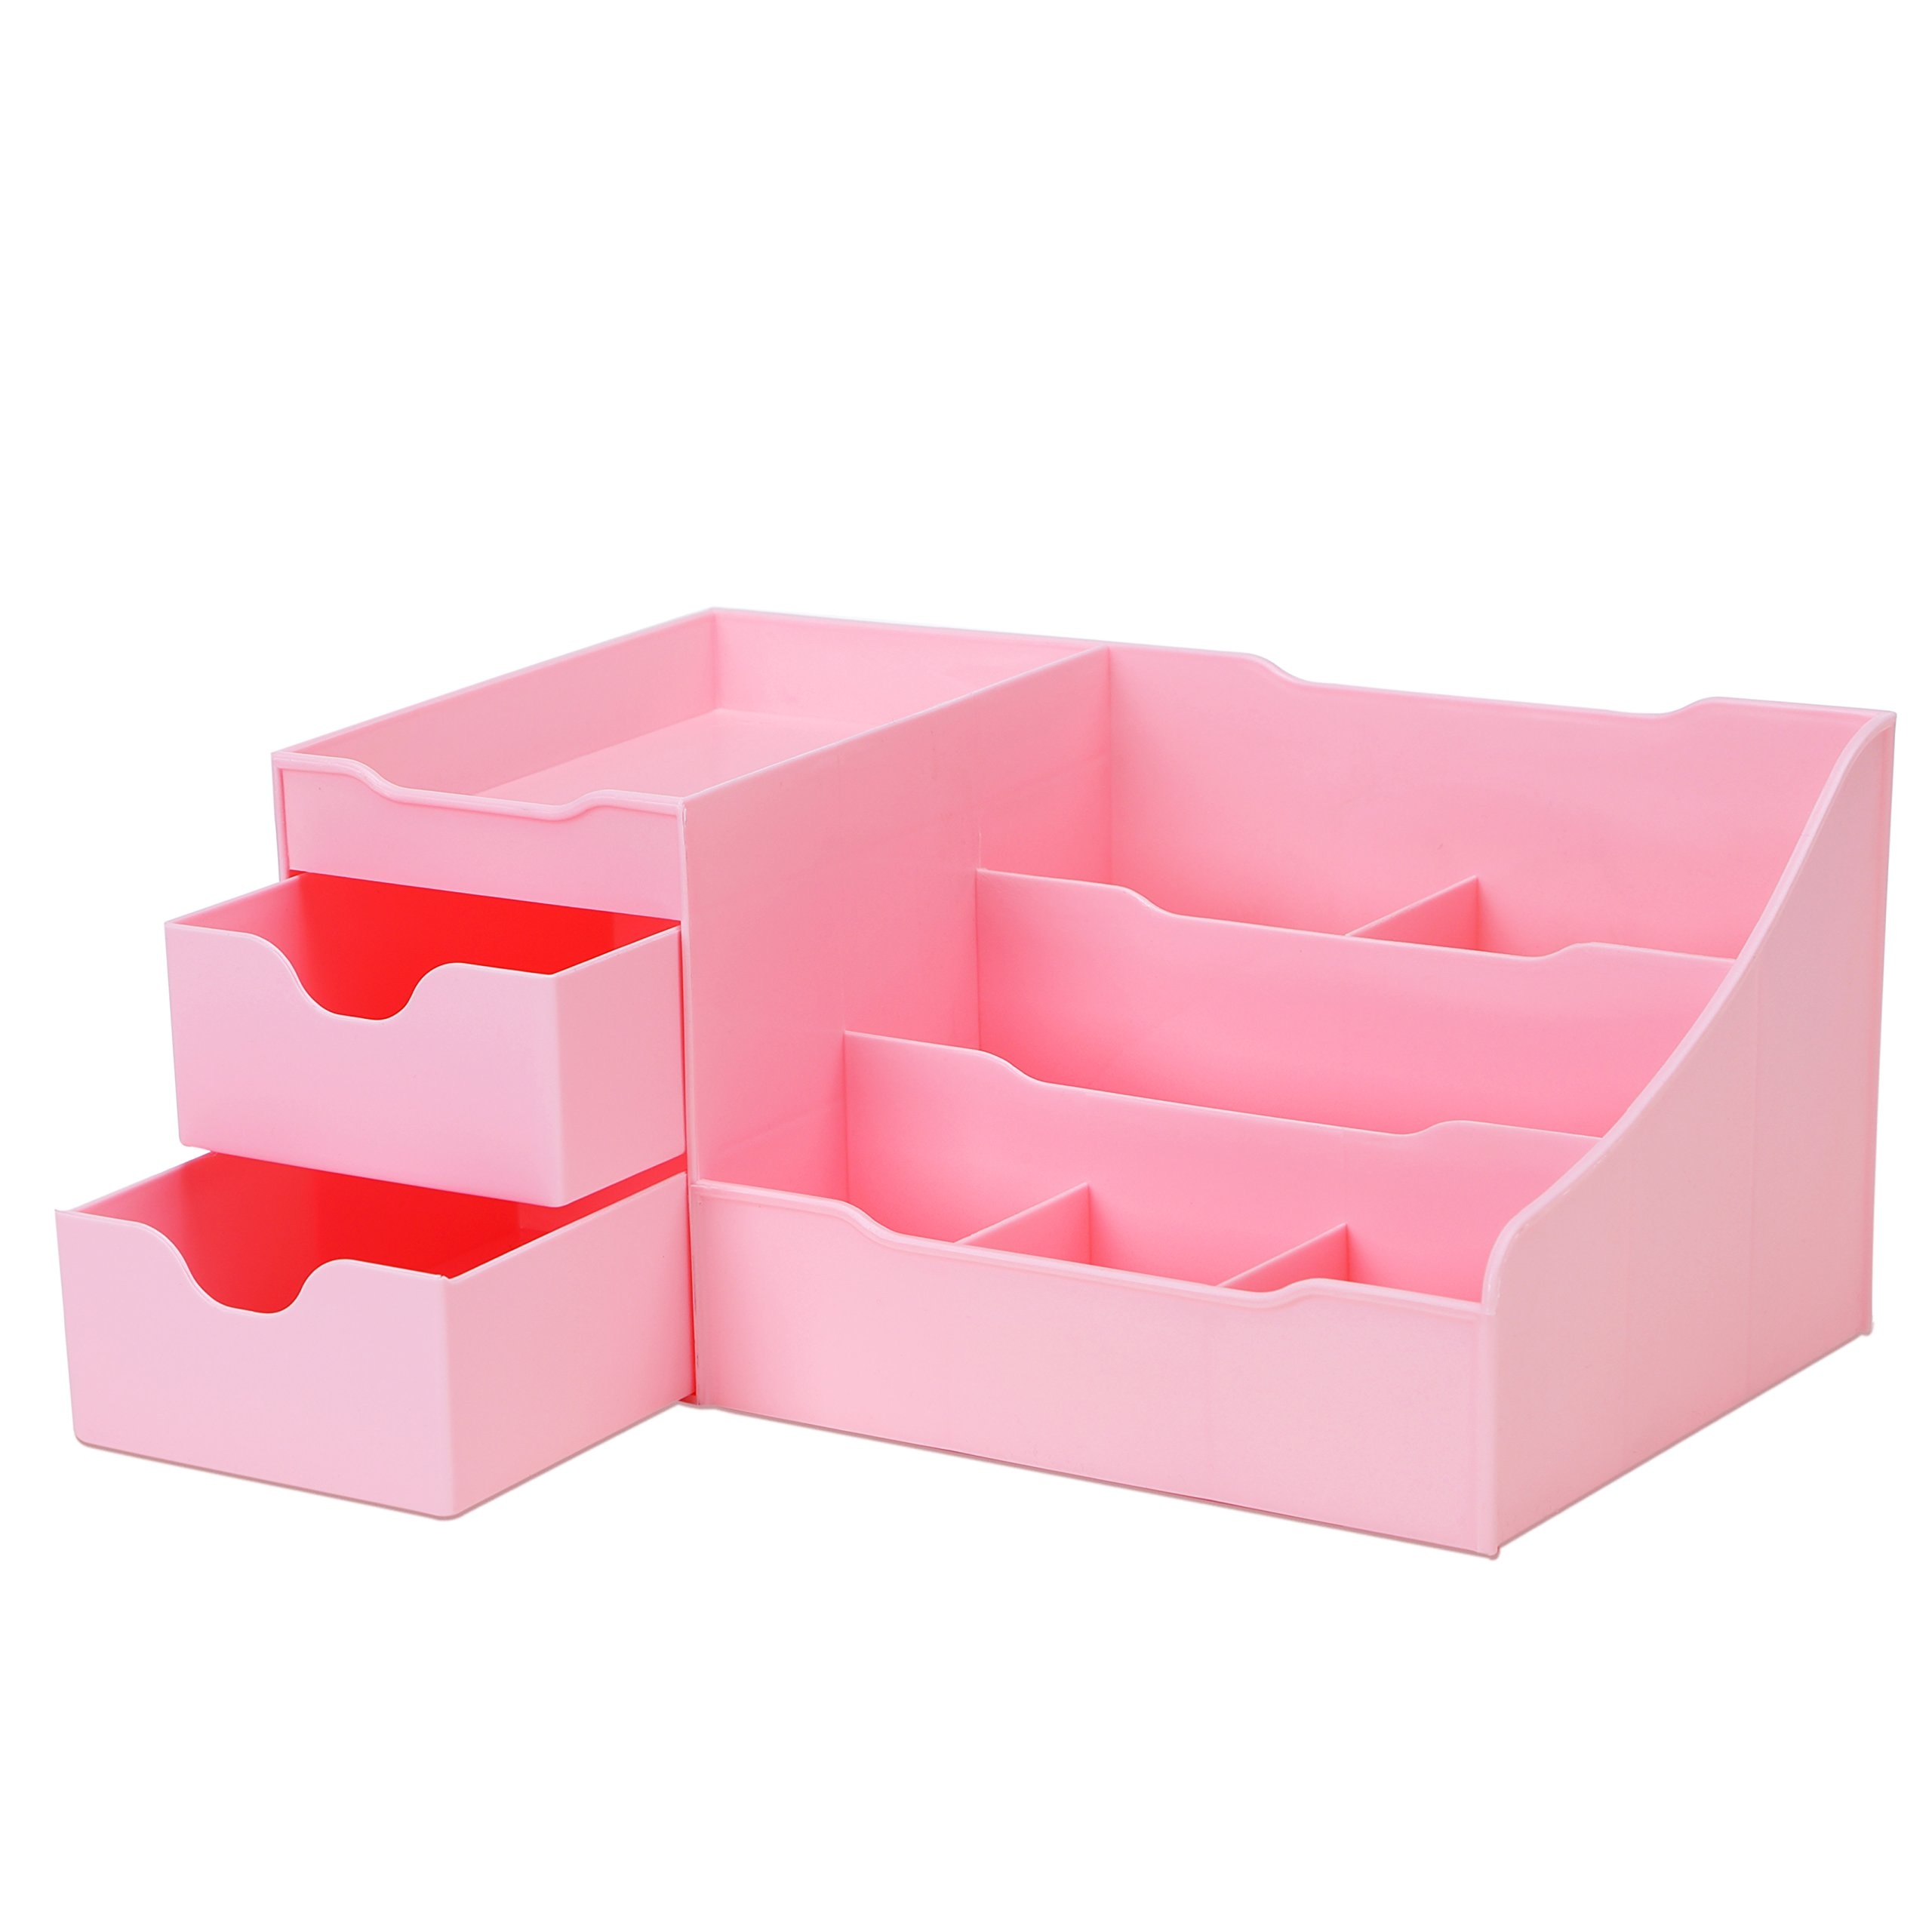 Uncluttered Designs Makeup Organizer with Drawers (Pink)